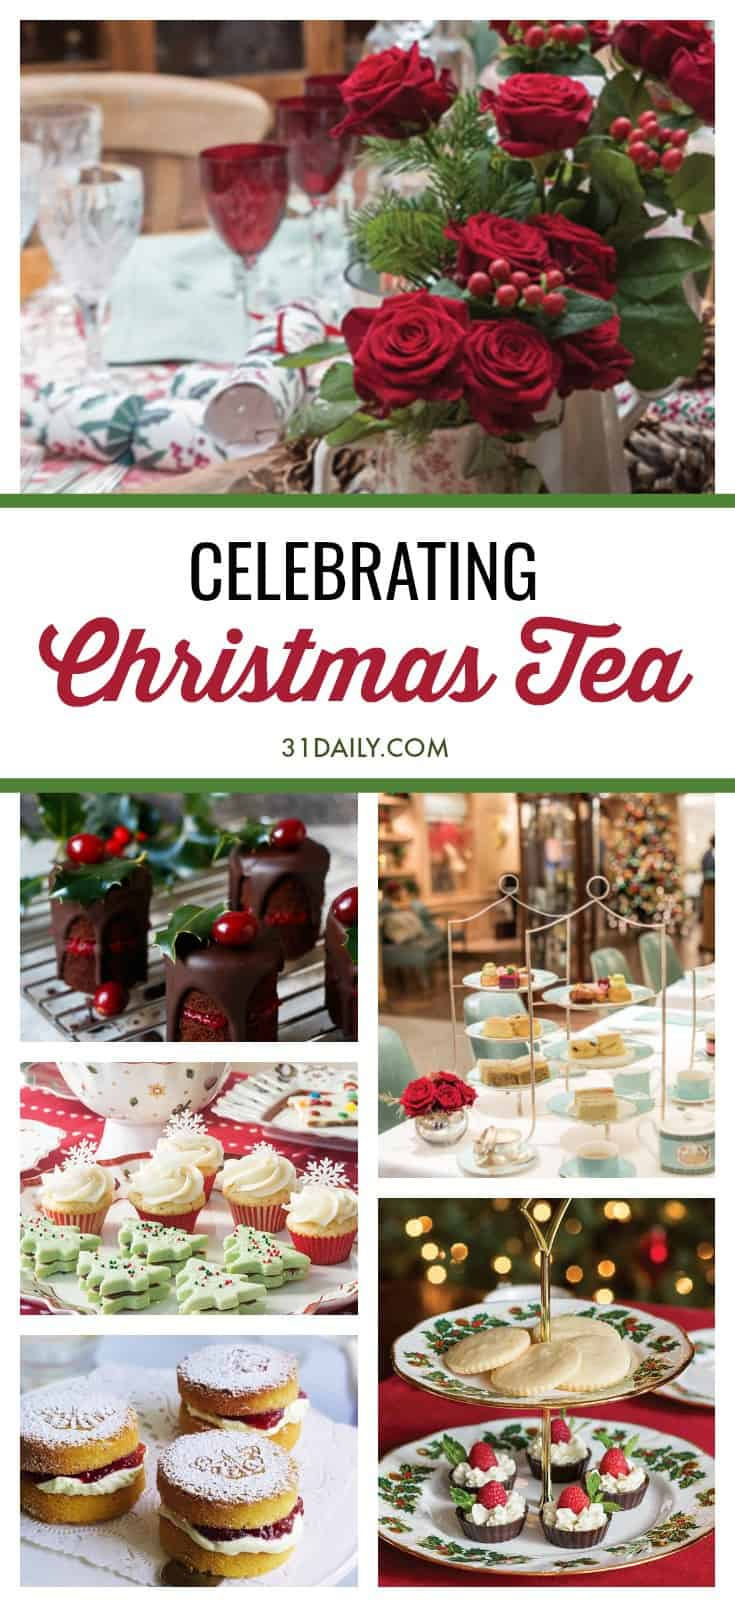 Hosting a Christmas Tea to Celebrate the Holidays | 31Daily.com